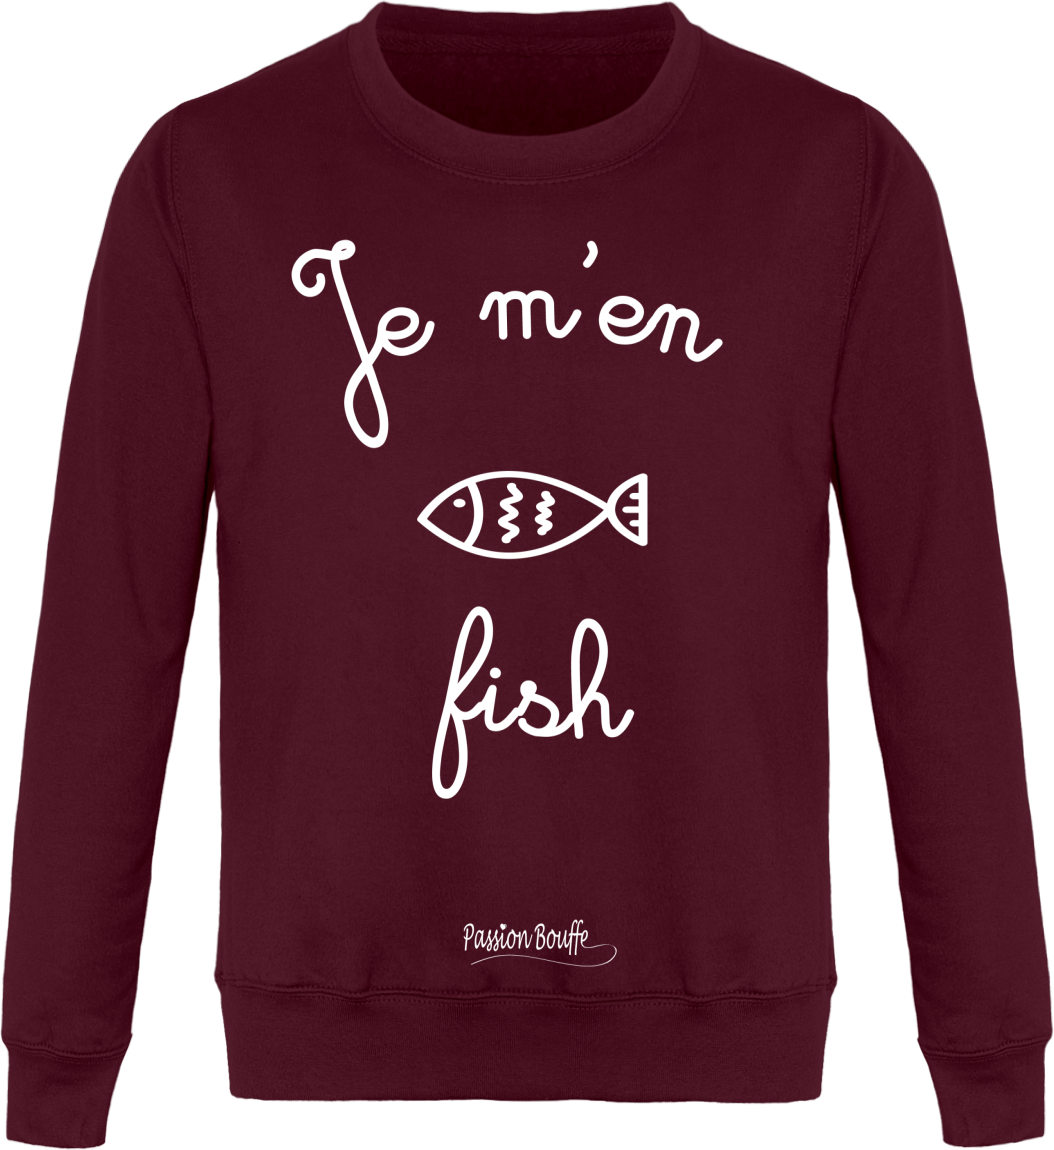 "Sweat ""Je m'en fish""-Passion Bouffe"